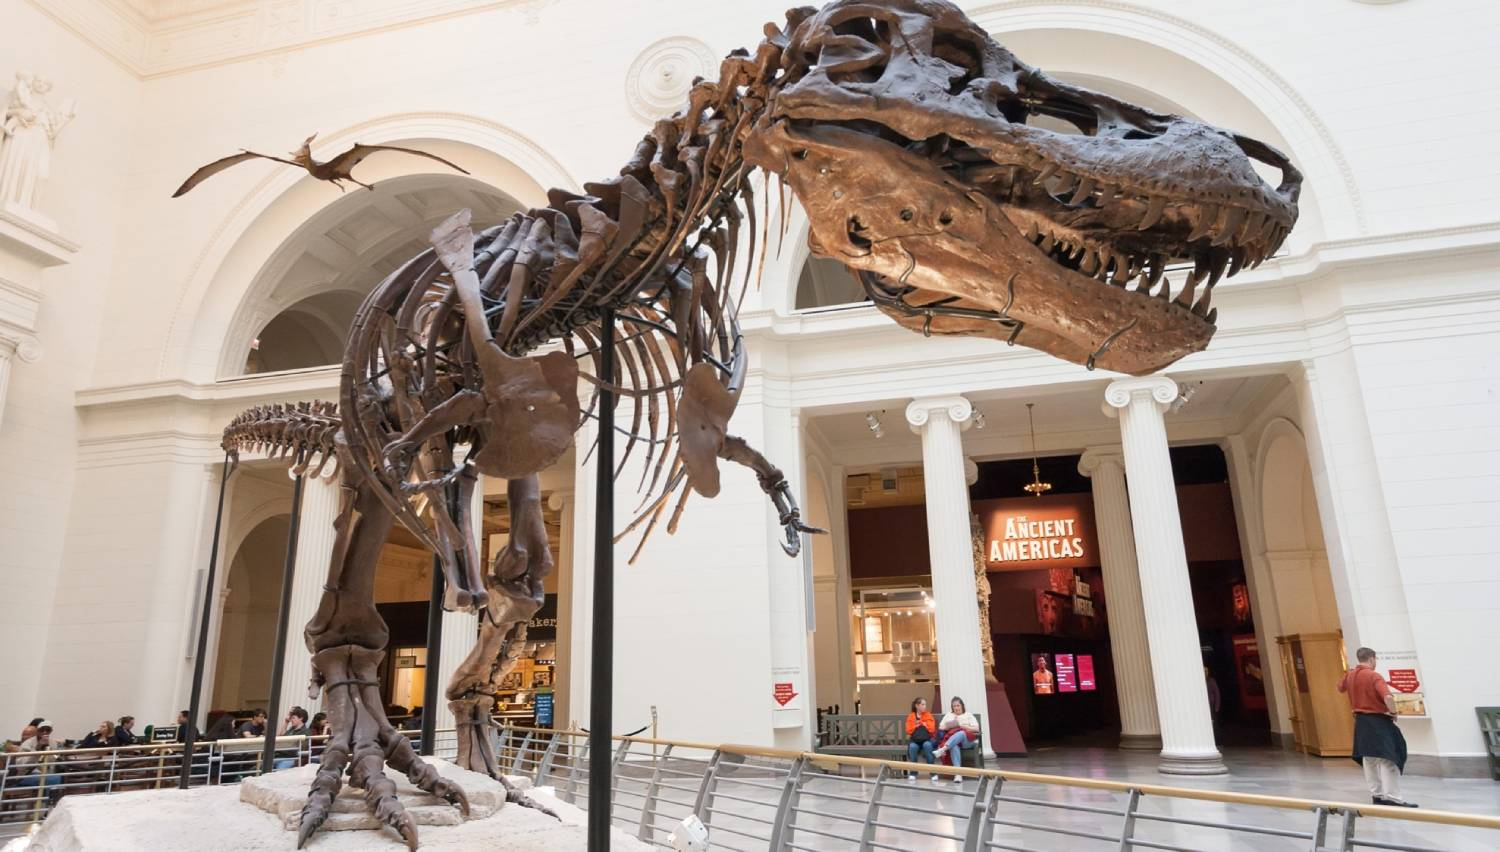 Field Museum of Natural History - Things To Do In Chicago